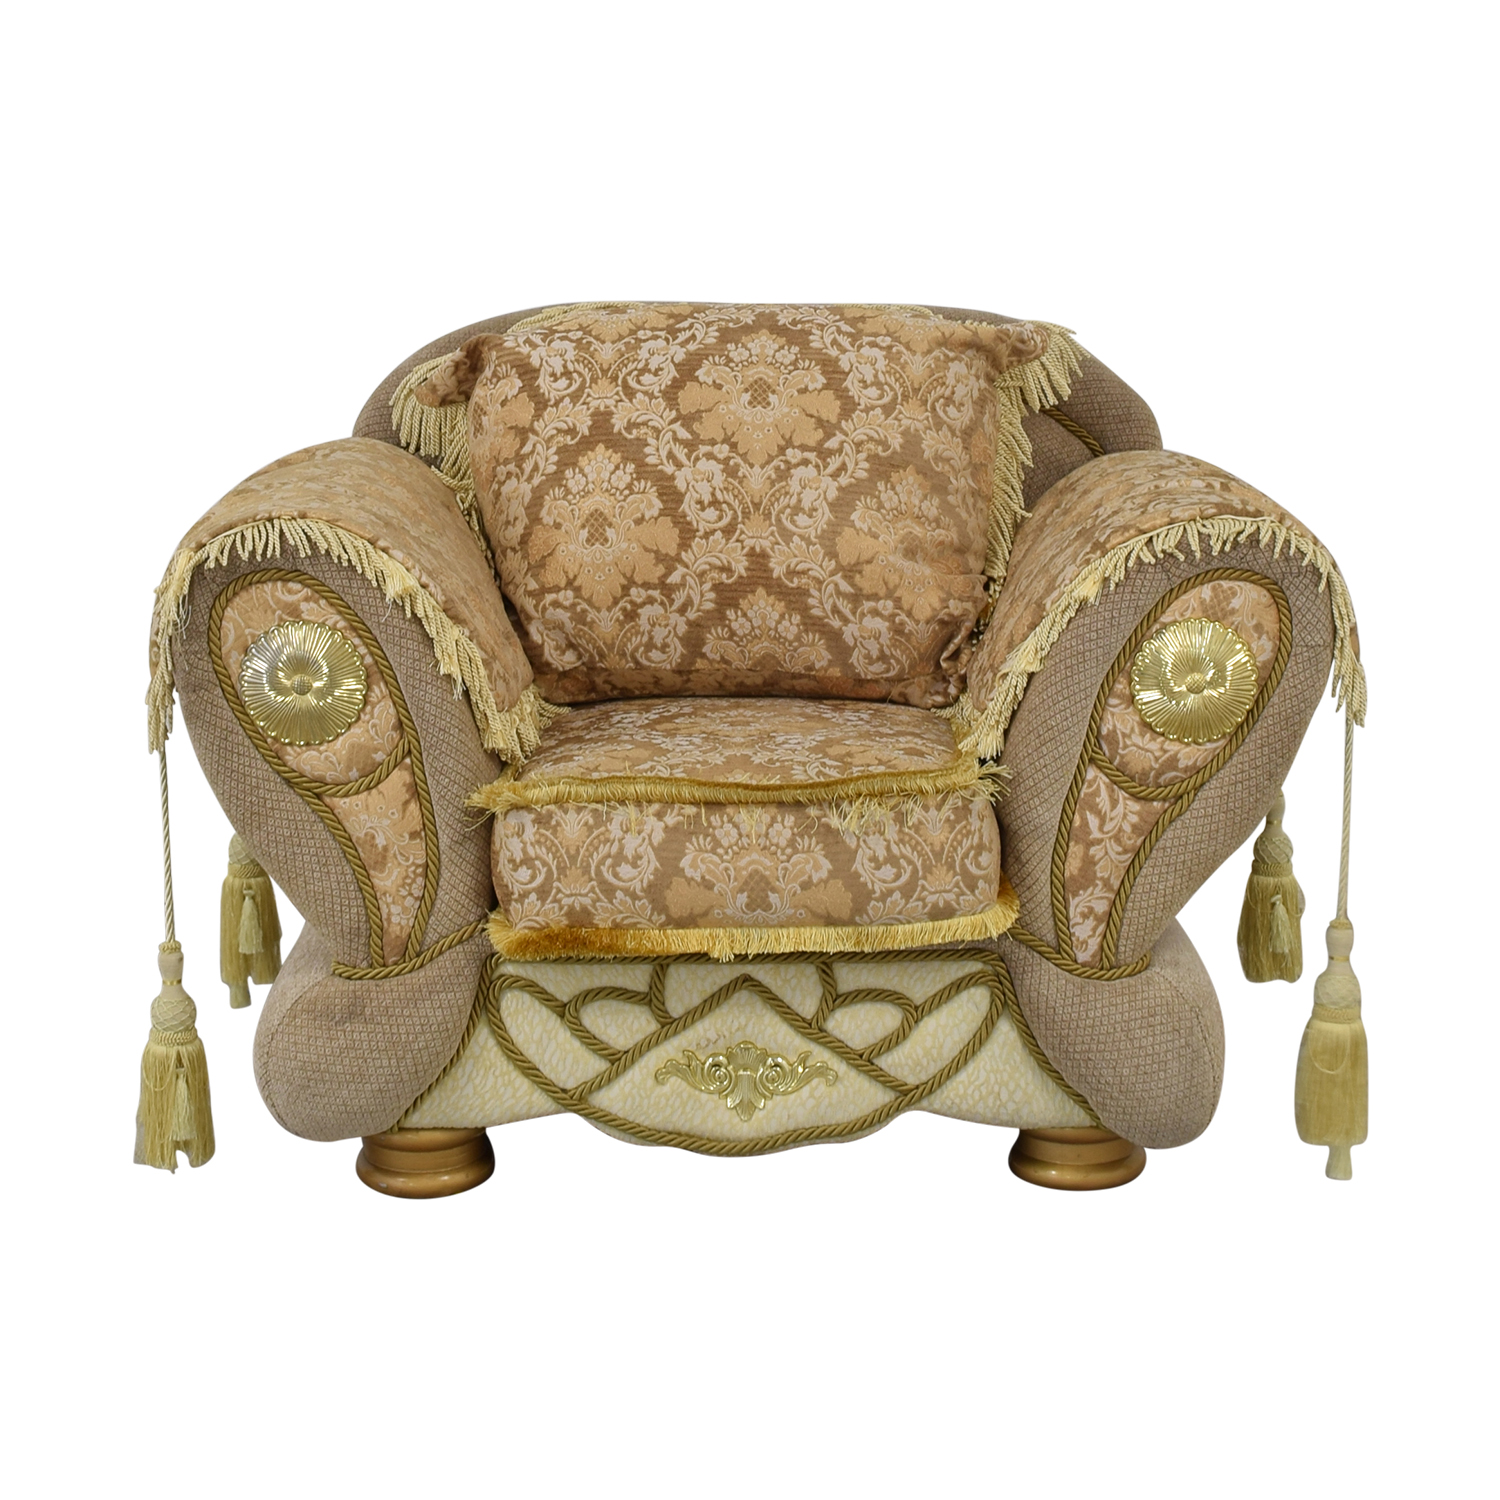 Elegant Furniture and Lighting Elegant Furniture and Lighting Victorian Chair Accent Chairs